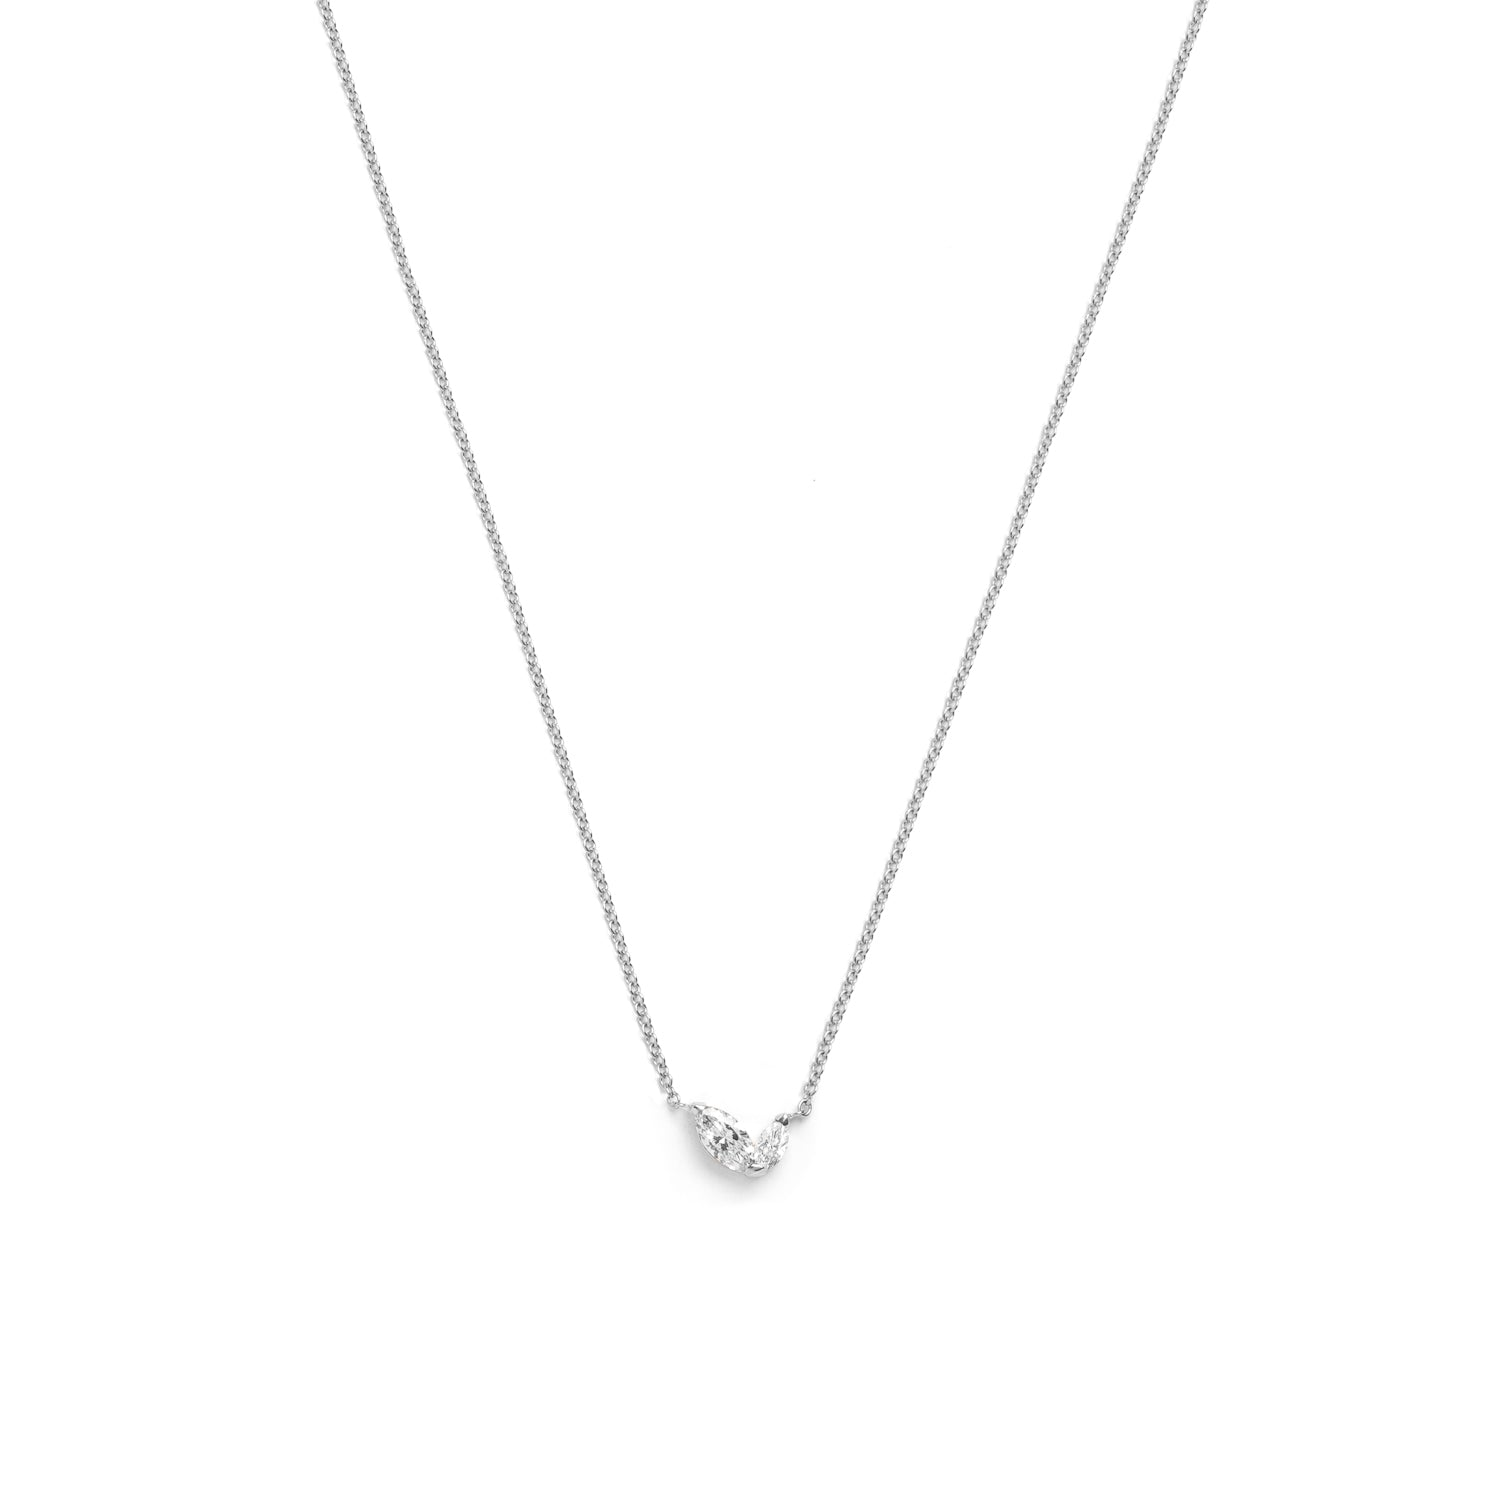 Selin Kent 14K Defne Necklace with Two Marquise White Diamonds